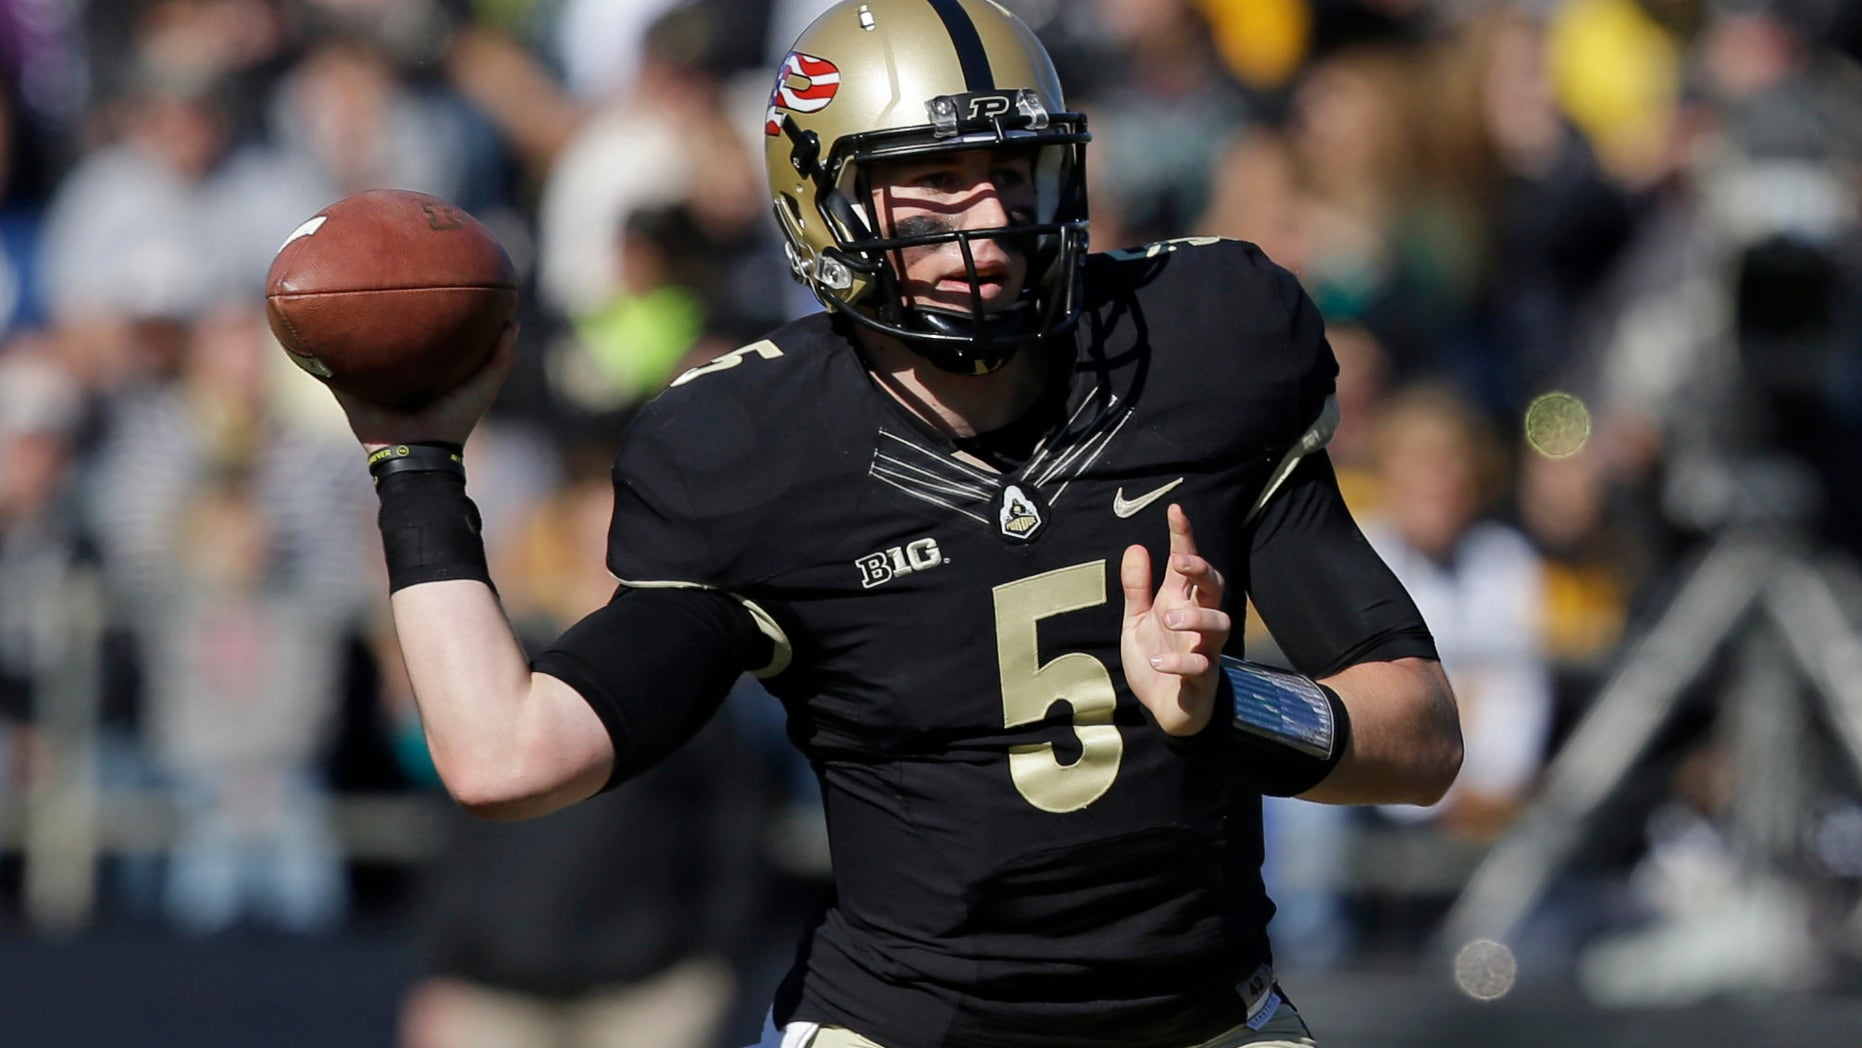 Purdue quarterback Danny Etling throws against Iowa during the first half of an NCAA college football game in West Lafayette, Ind., Saturday, Nov. 9, 2013. (AP Photo/Michael Conroy)